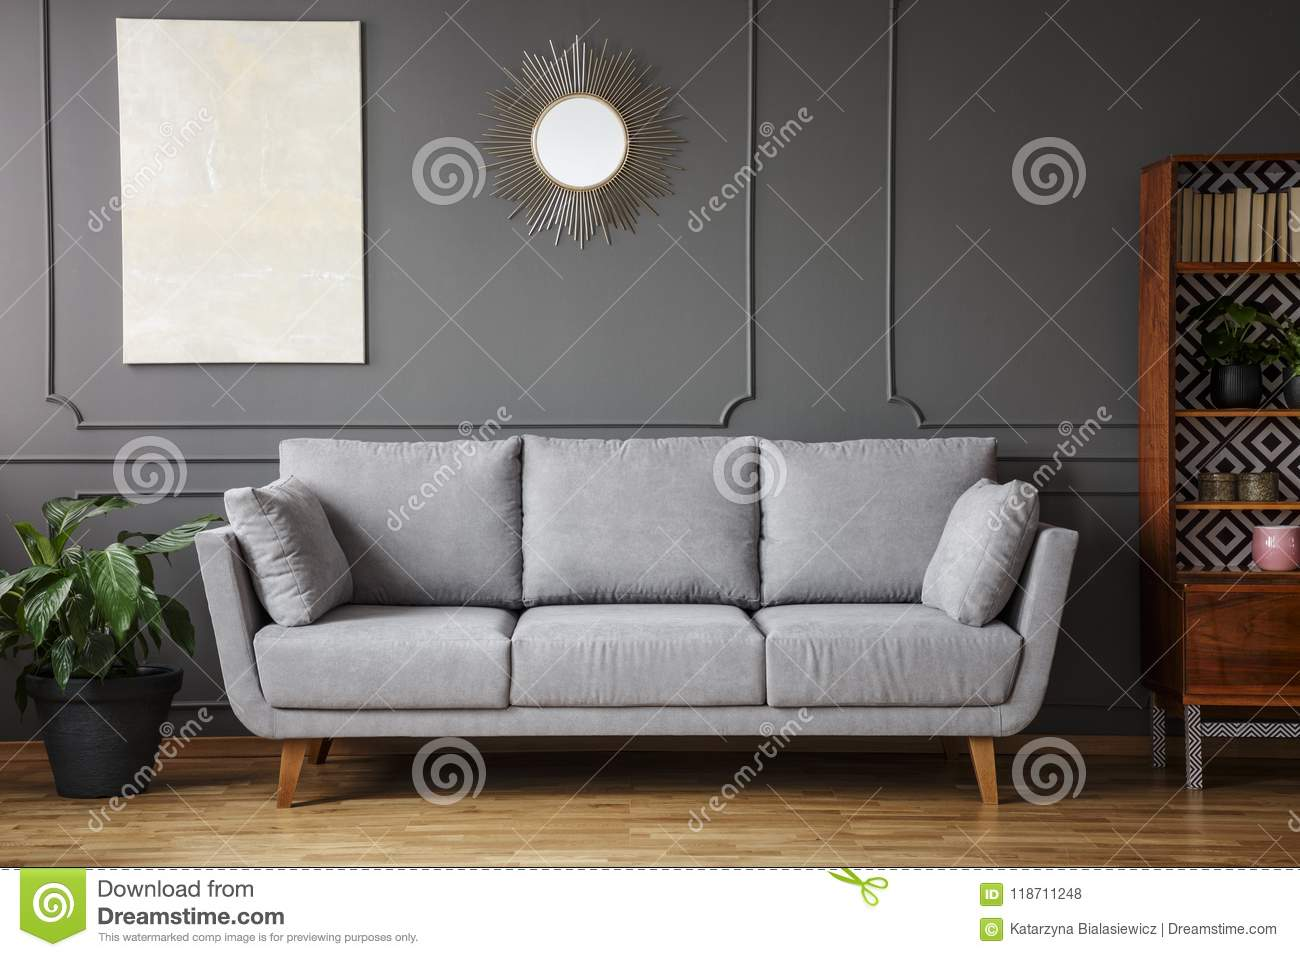 Elegant sofa between a plant a wooden cupboard in a living room interior with a painting and mirror on the wall in a living room